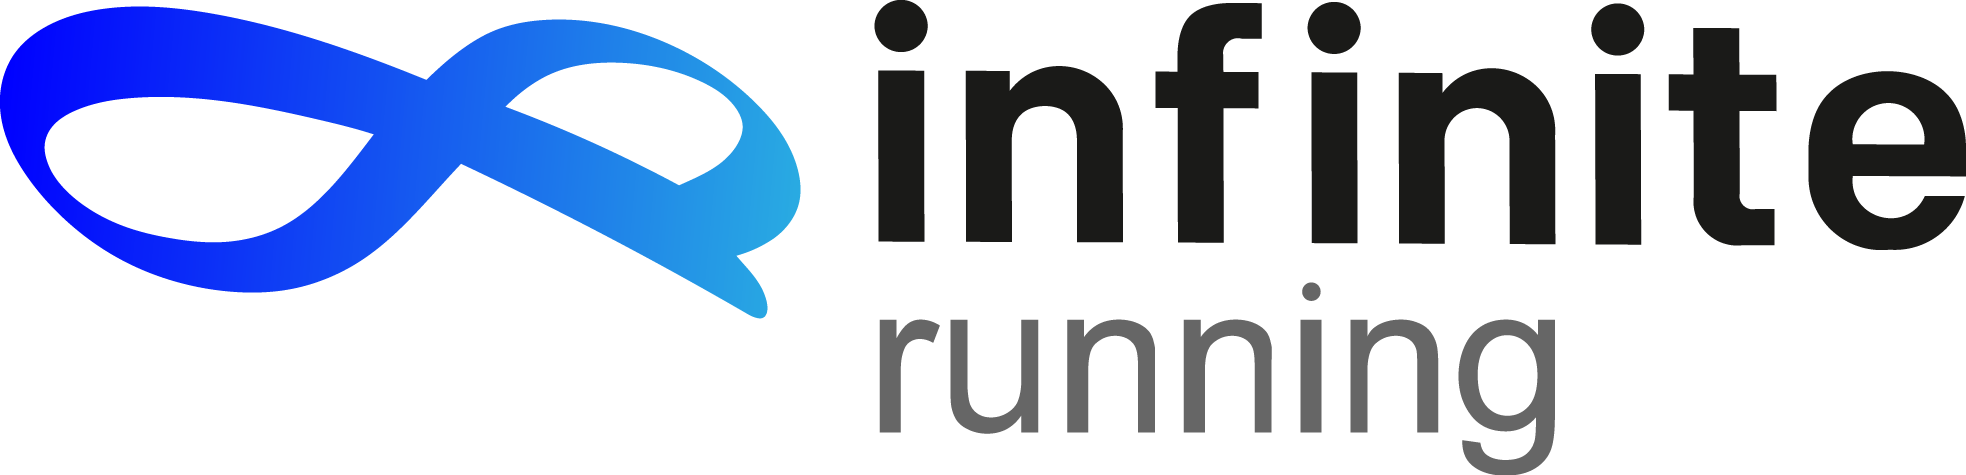 Inifinite Running